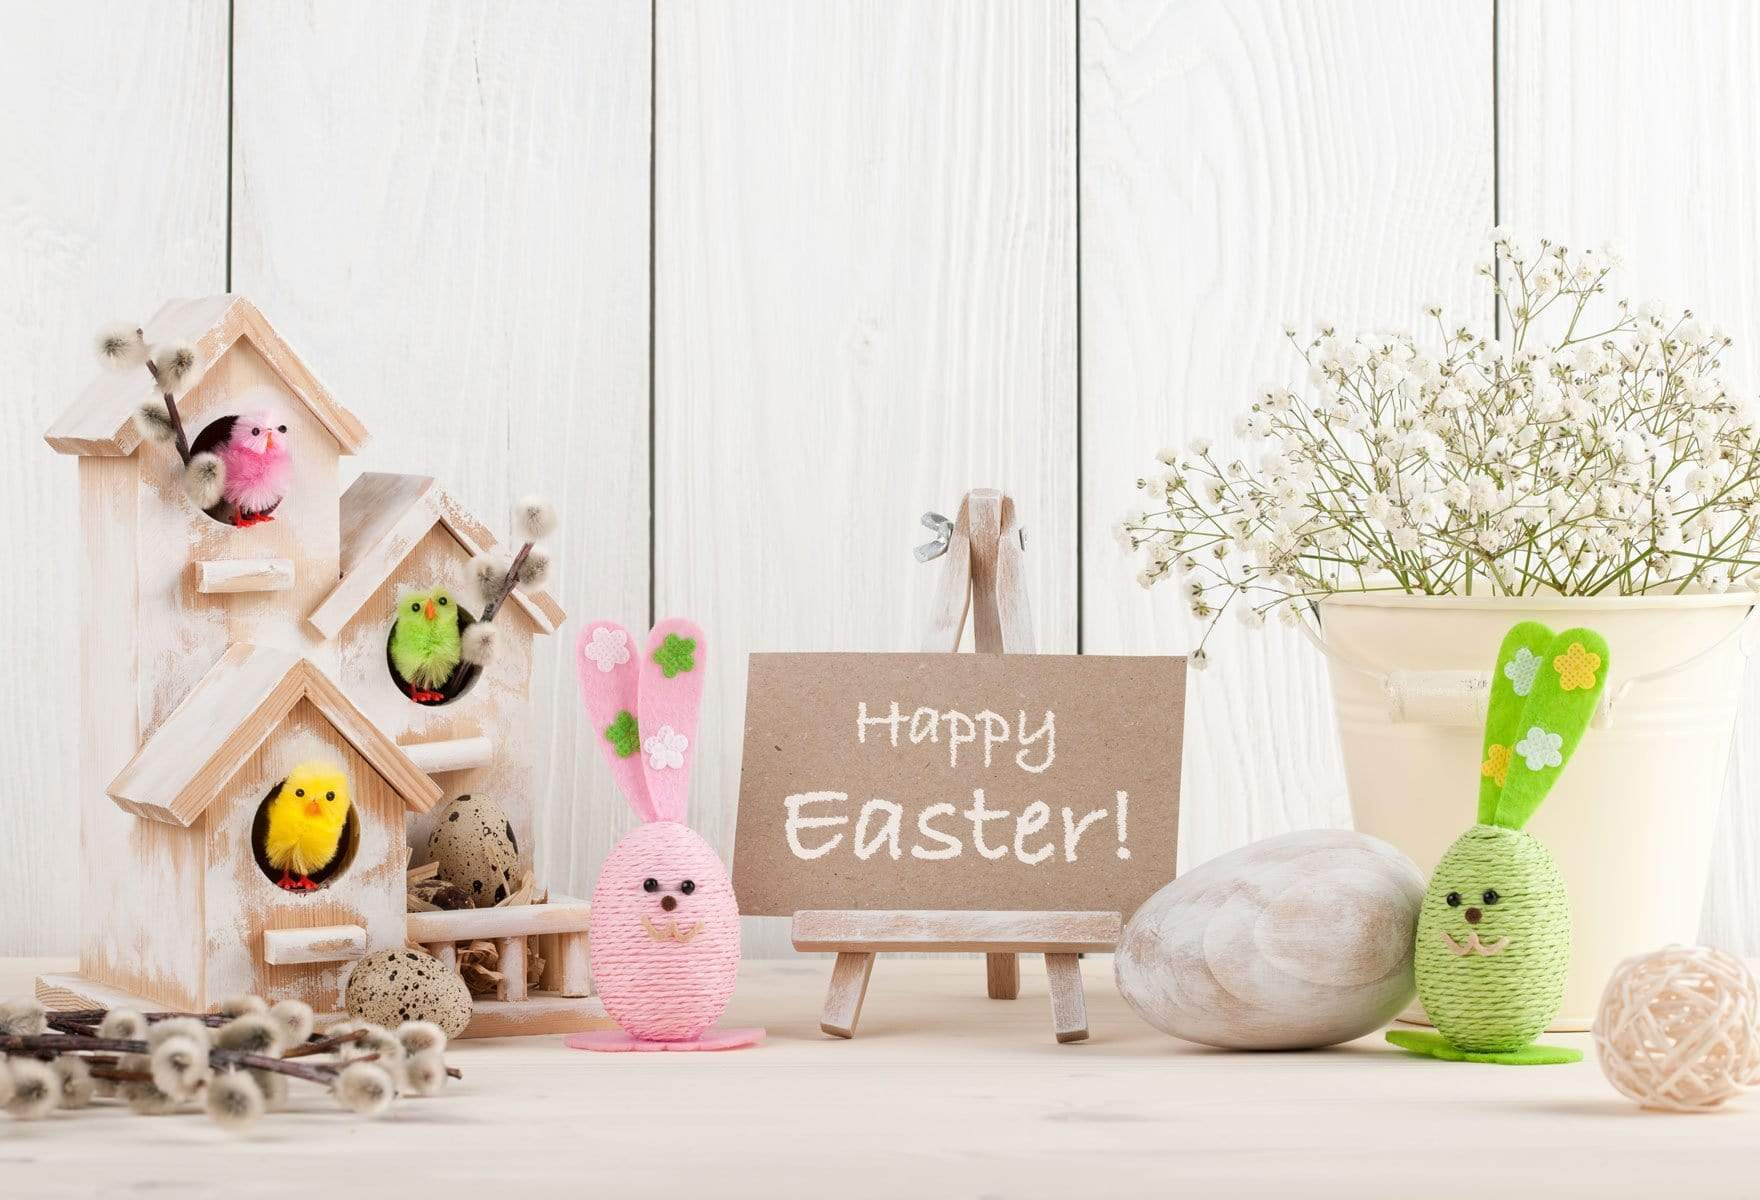 Load image into Gallery viewer, Katebackdrop£ºKate Spring Happy Easter White Wood Description Backdrop